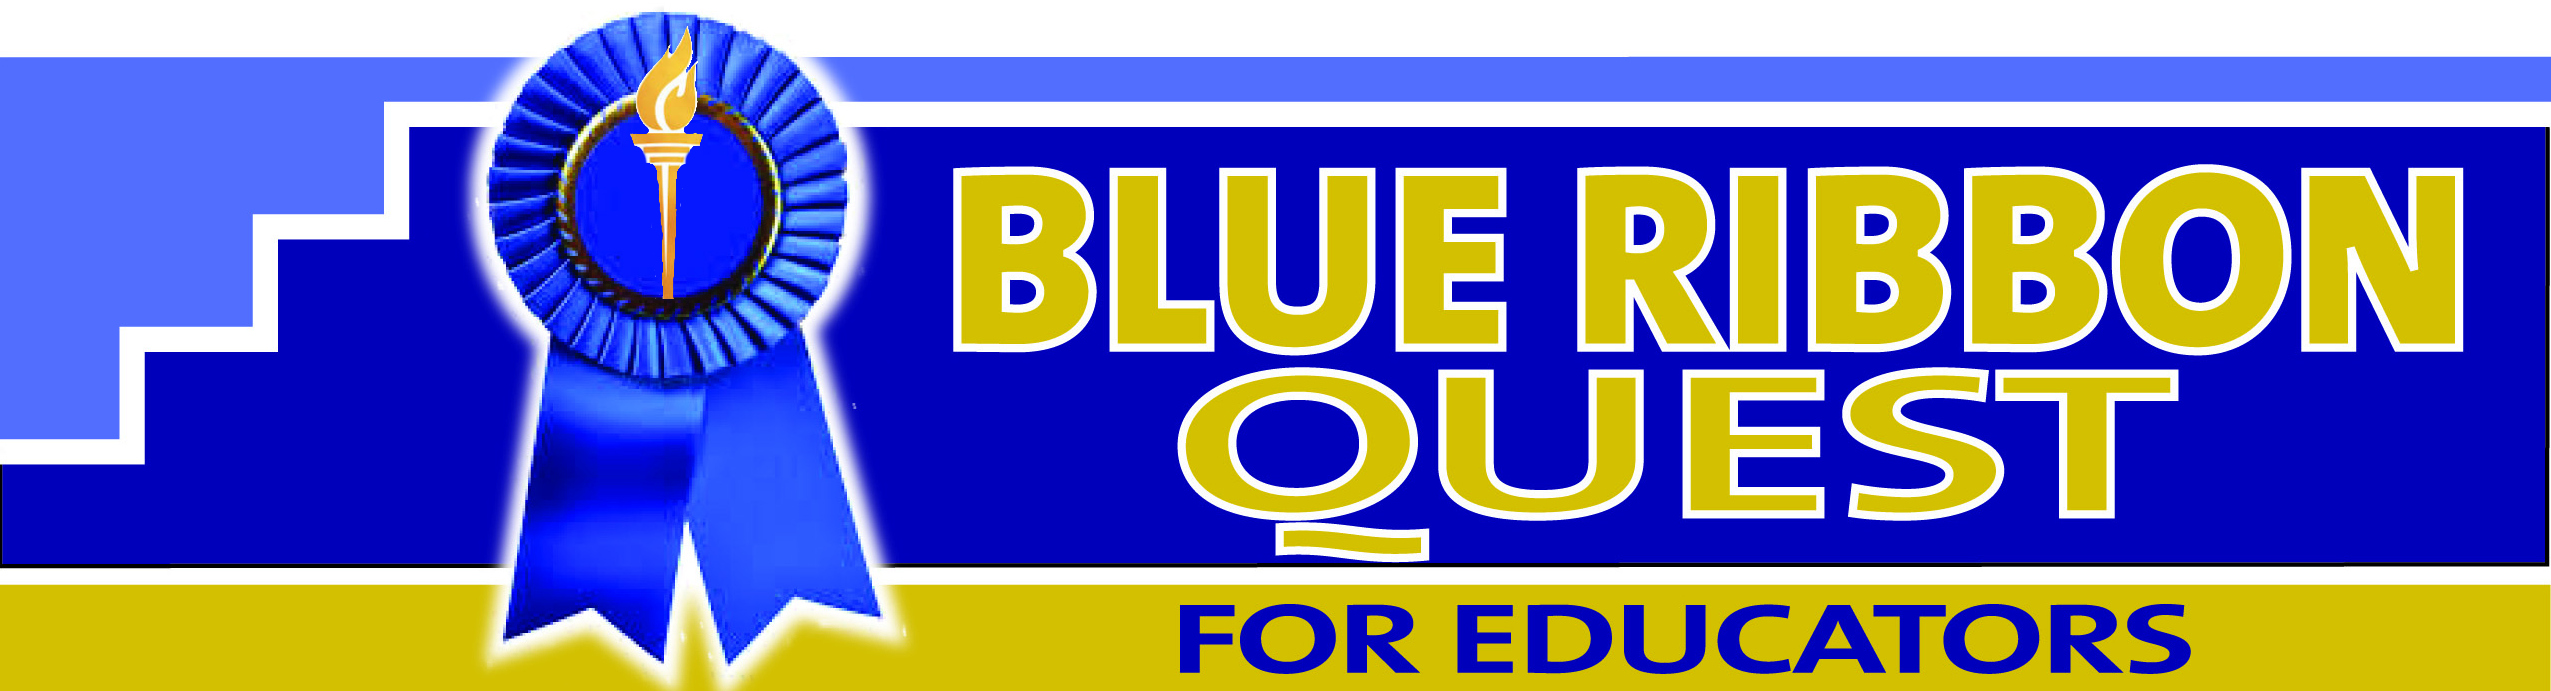 Blue Ribbon Quest